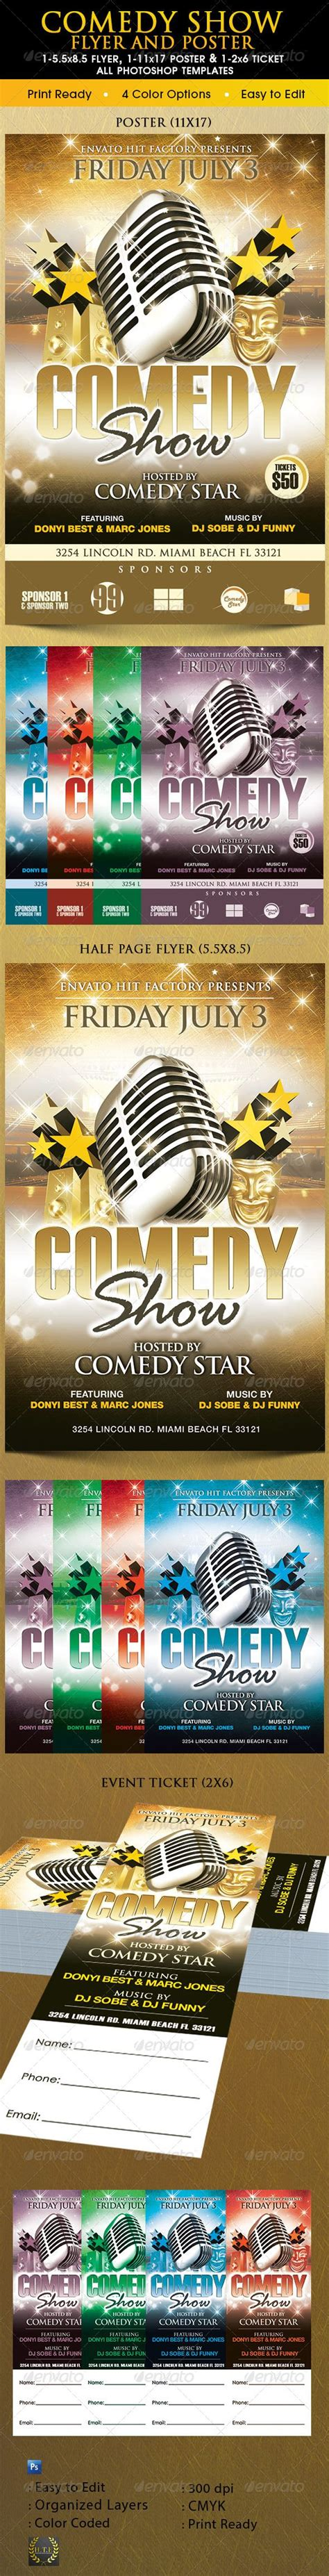 show ticket template 16 best images about comedy show posters on